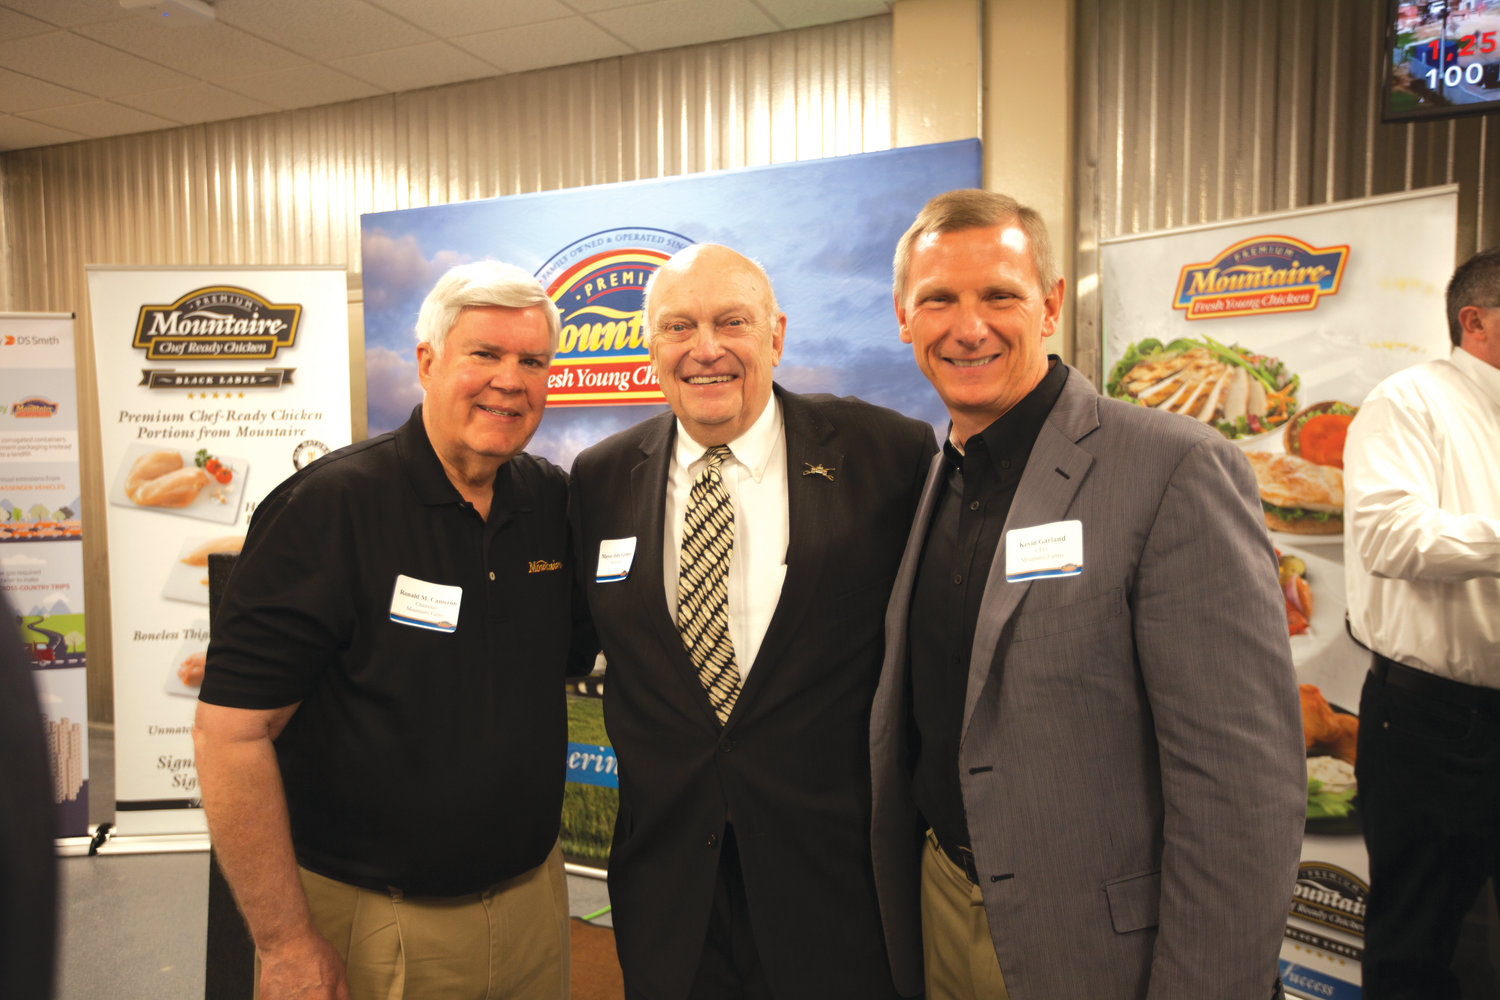 Chairman of Mountaire Farms Ronnie Cameron, left, with Siler City Mayor John Grimes and Mountaire Farms CEO Kevin Garland.